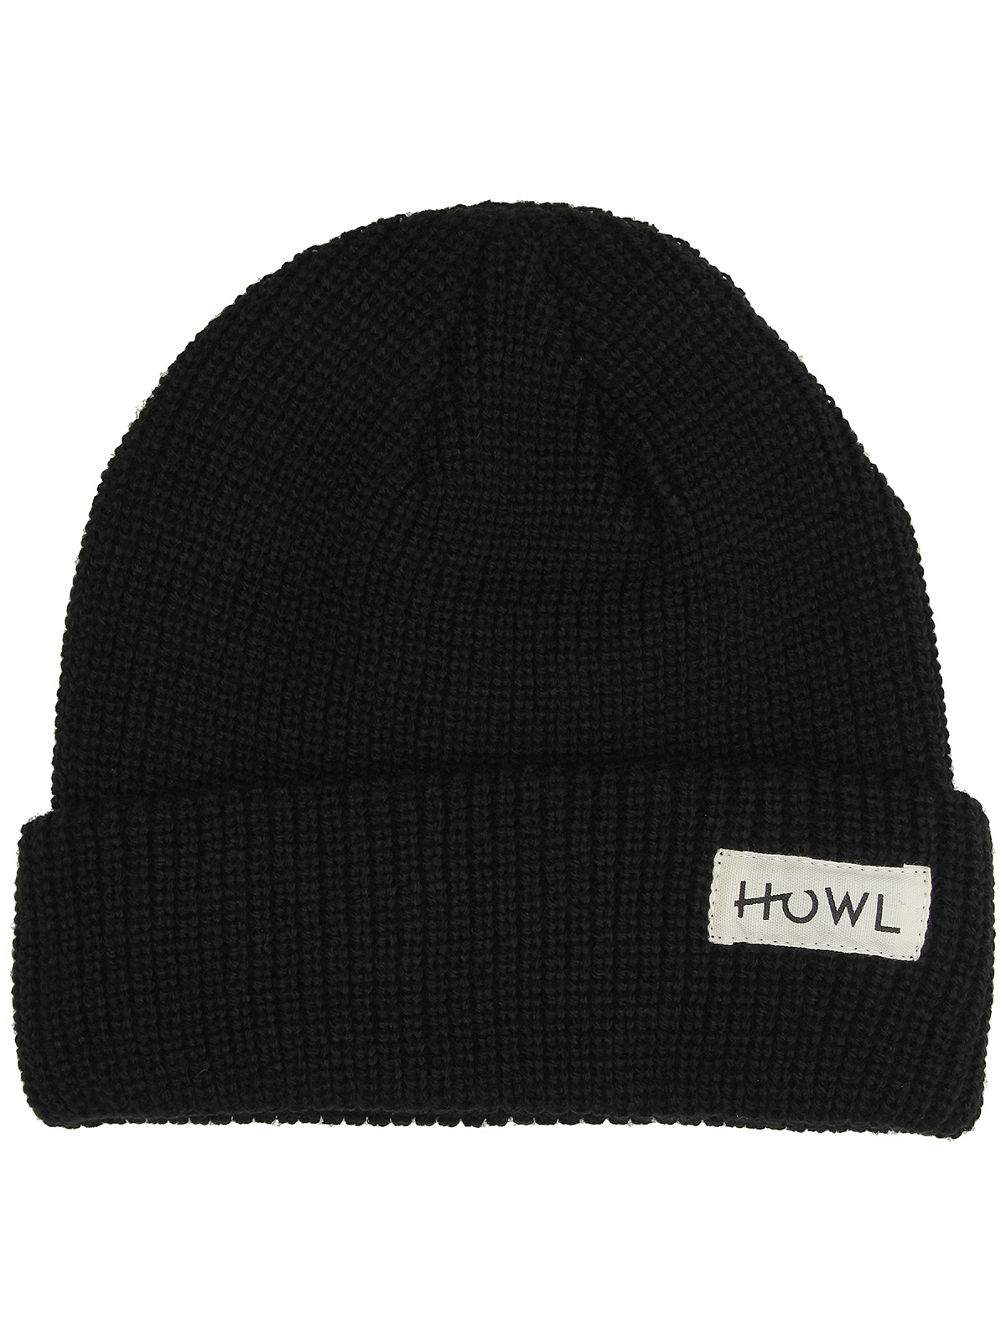 Buy Howl Waffle Beanie online at blue-tomato.com fd884f37b888